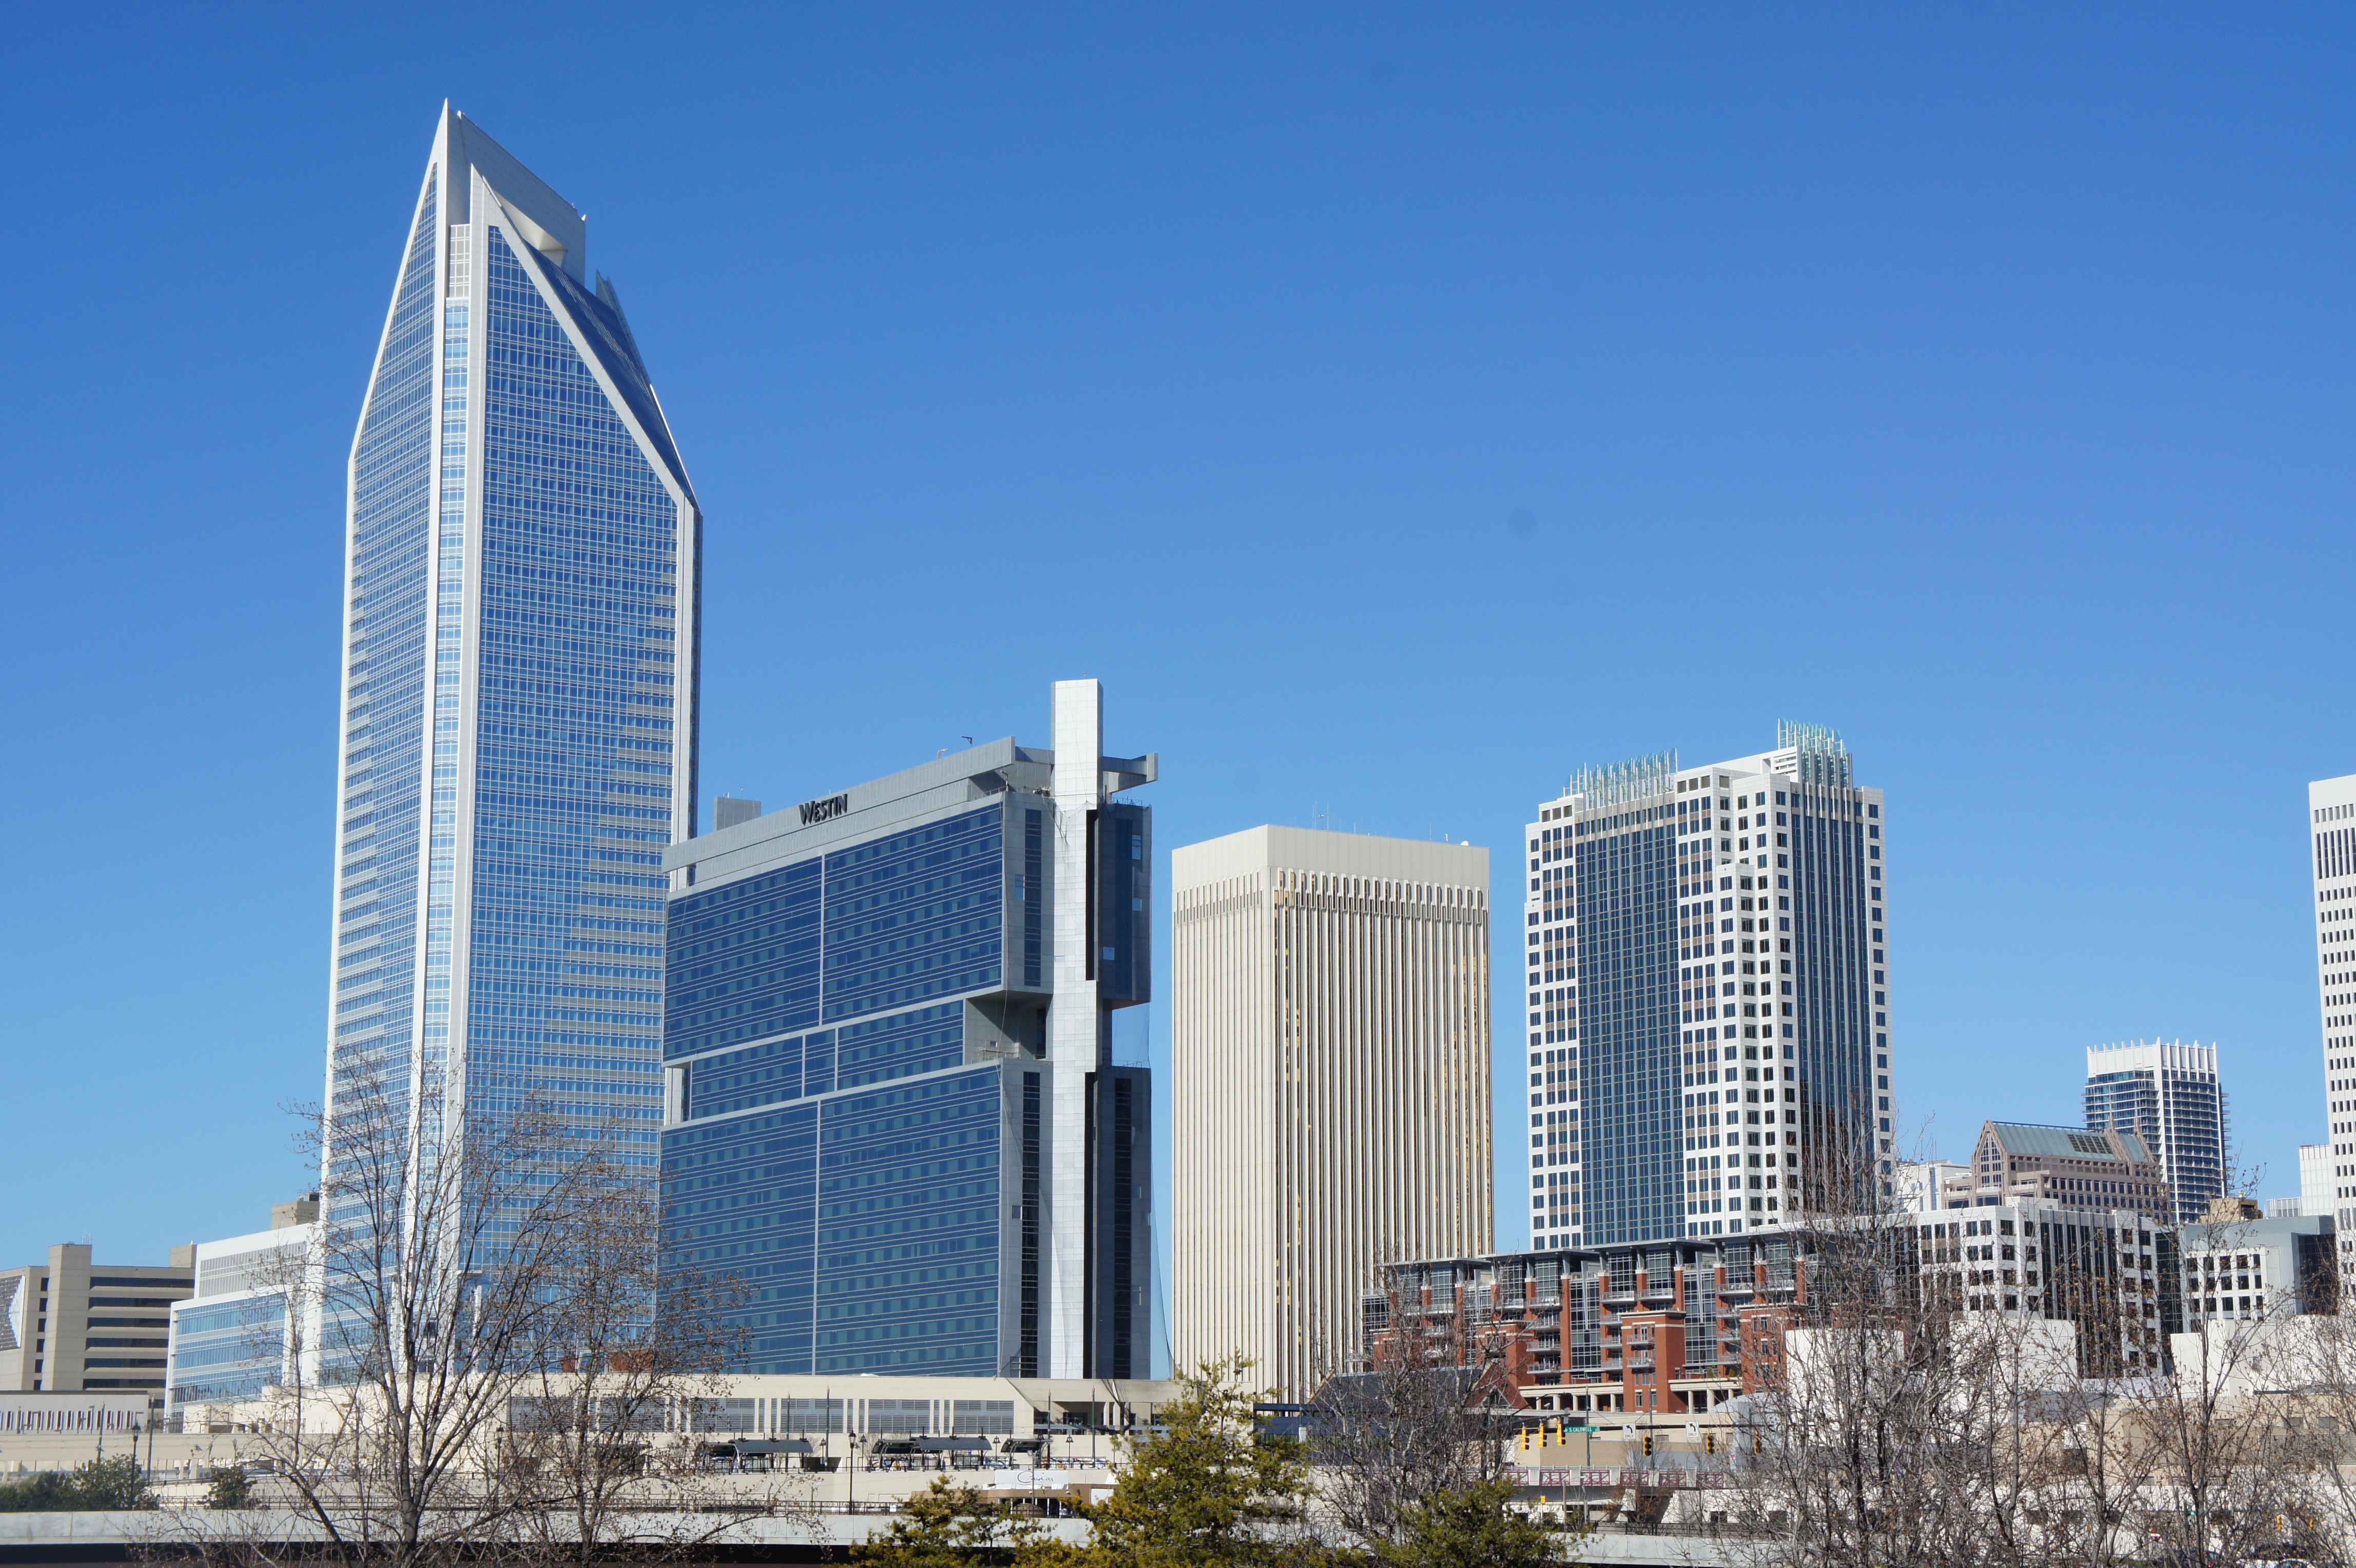 living uptown vs in the suburbs catalyst apartments charlotte nc